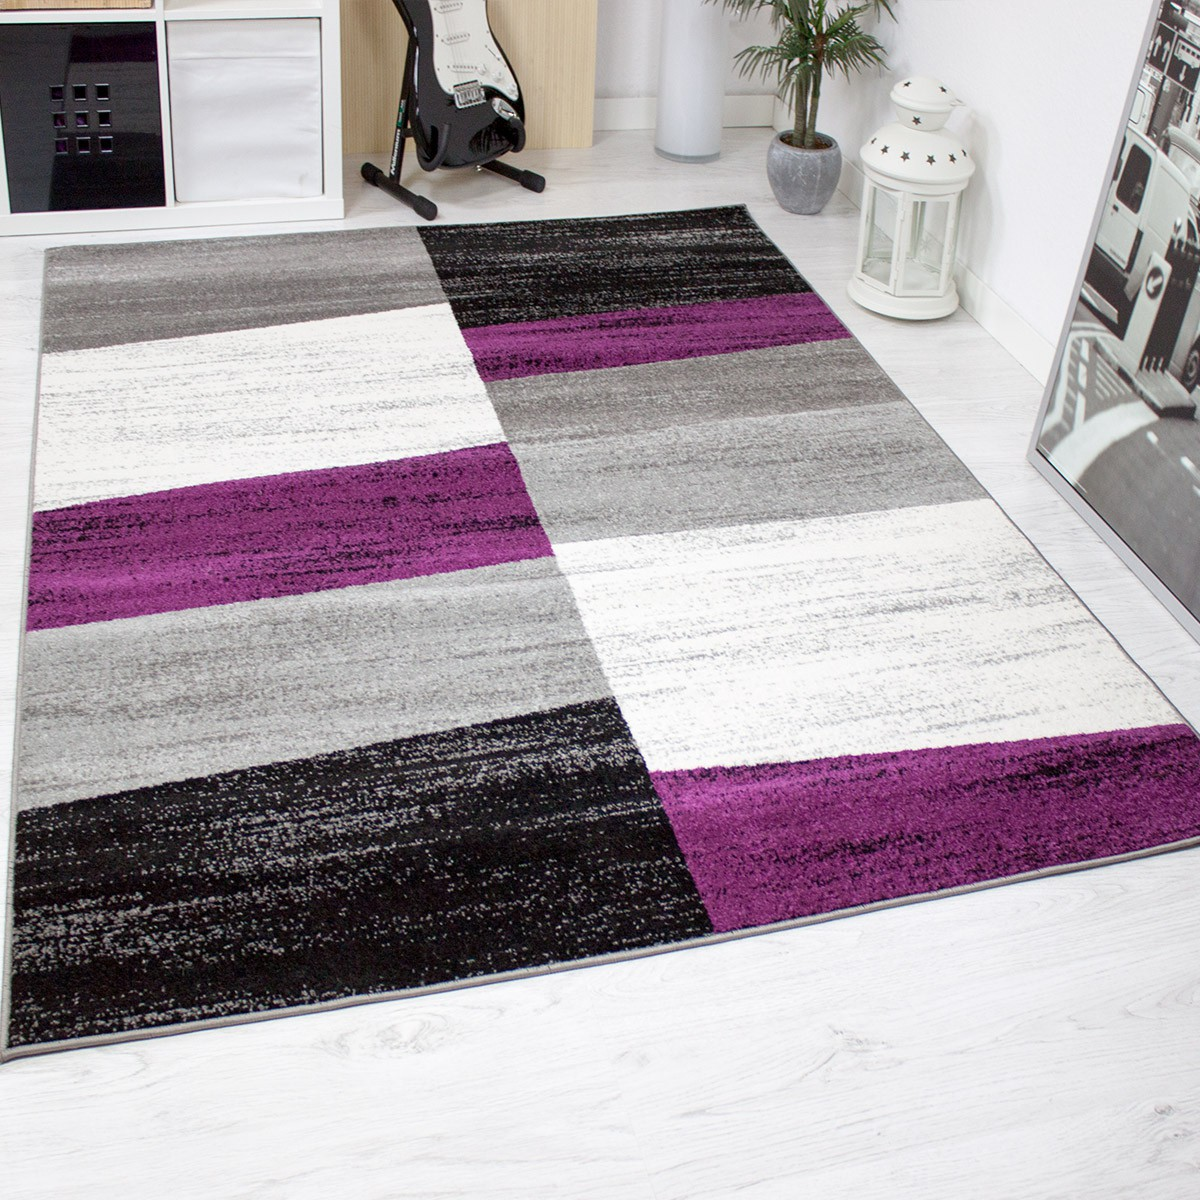 tapis gris violet dcoration tapis salon mauve clermont ferrand tapis salon gris noir tapis. Black Bedroom Furniture Sets. Home Design Ideas